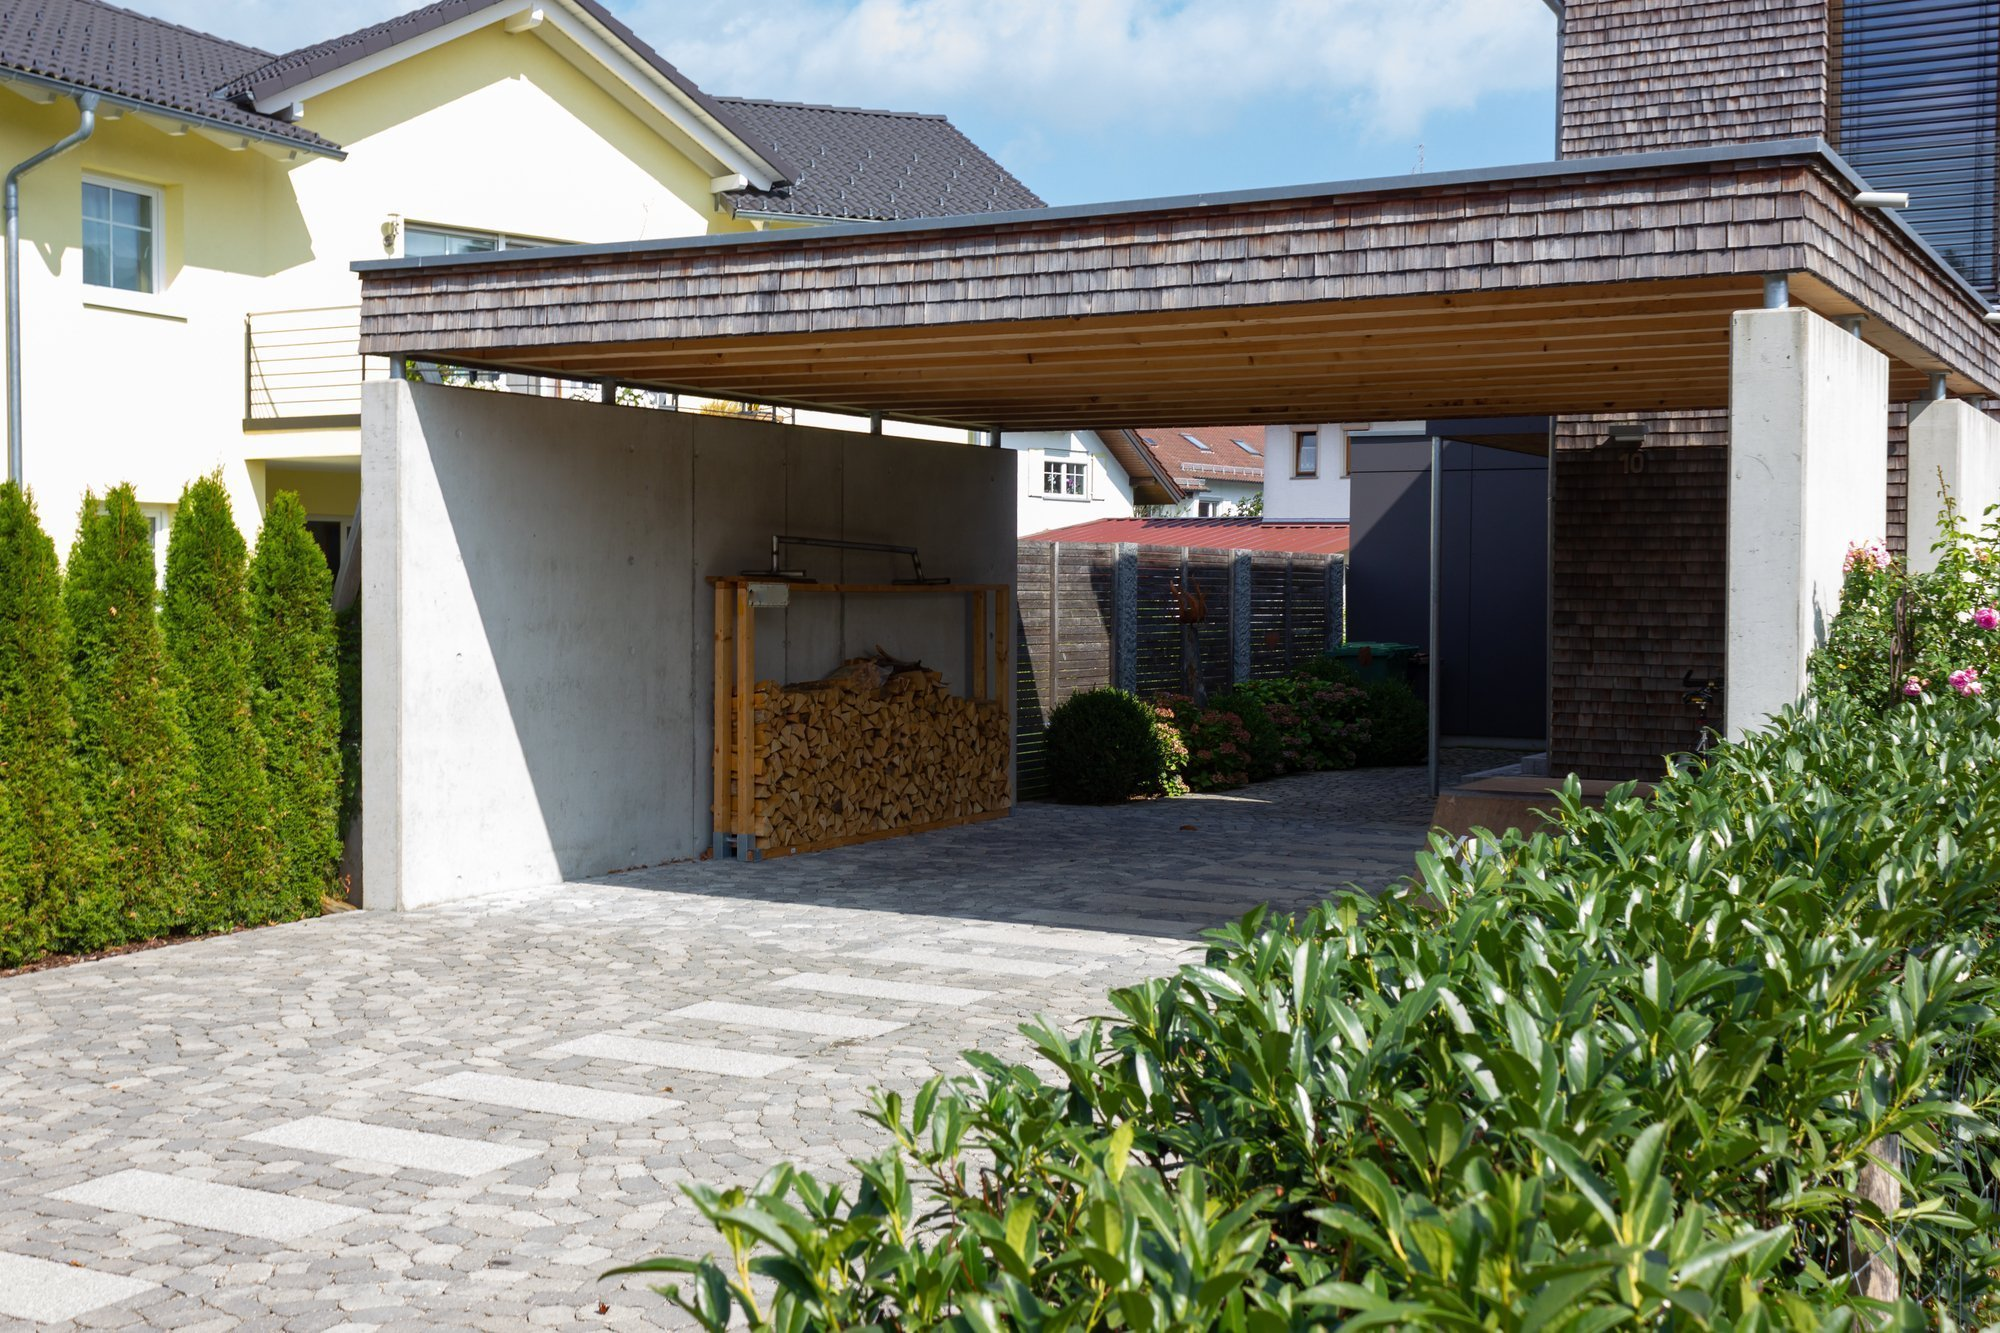 6 Other Creative Uses for Carports